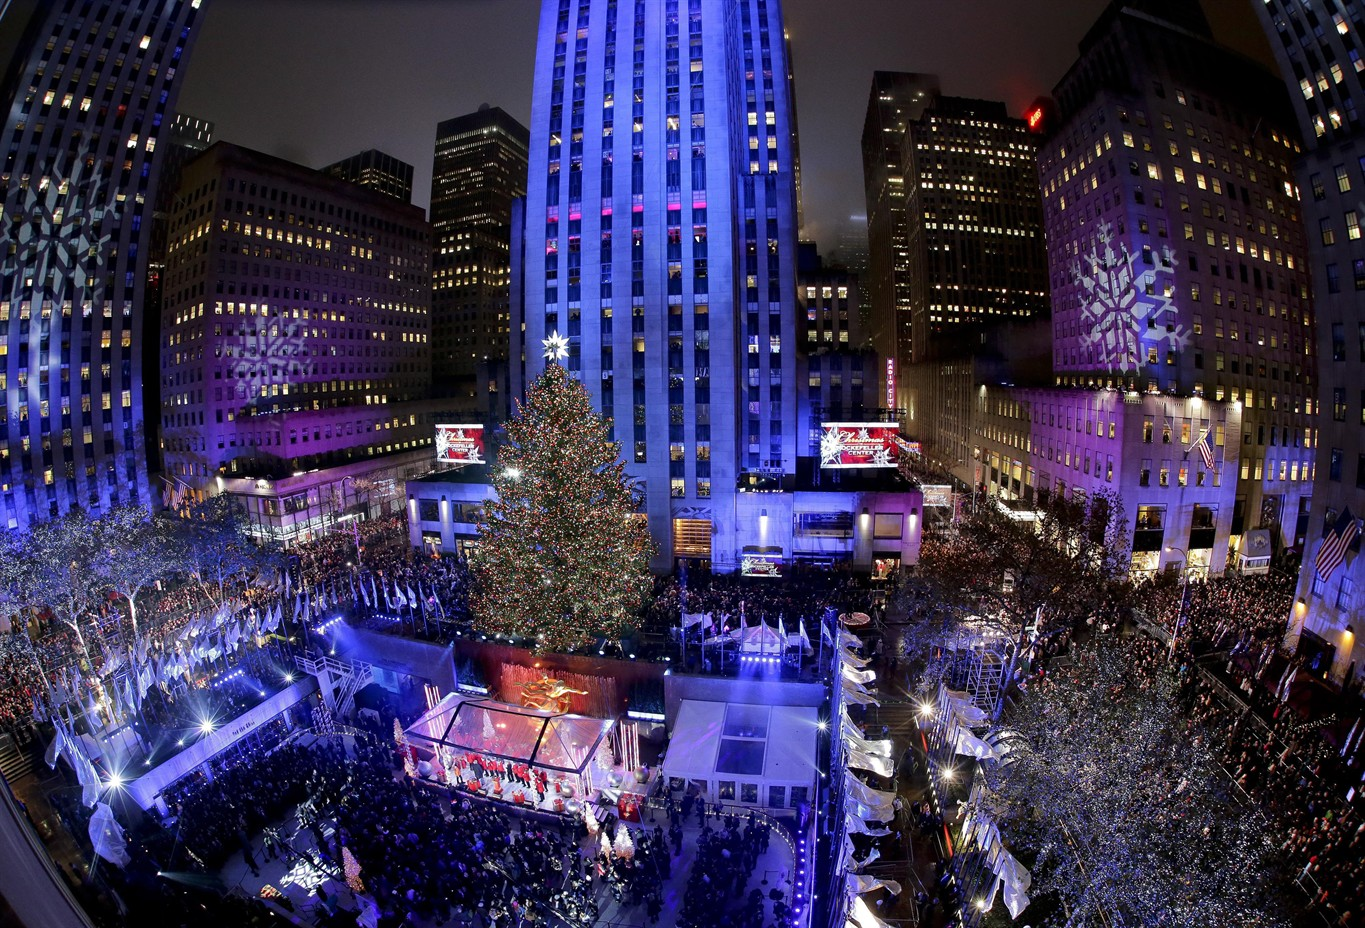 Thousands gather for NYC Rockefeller Center Christmas tree lighting ...